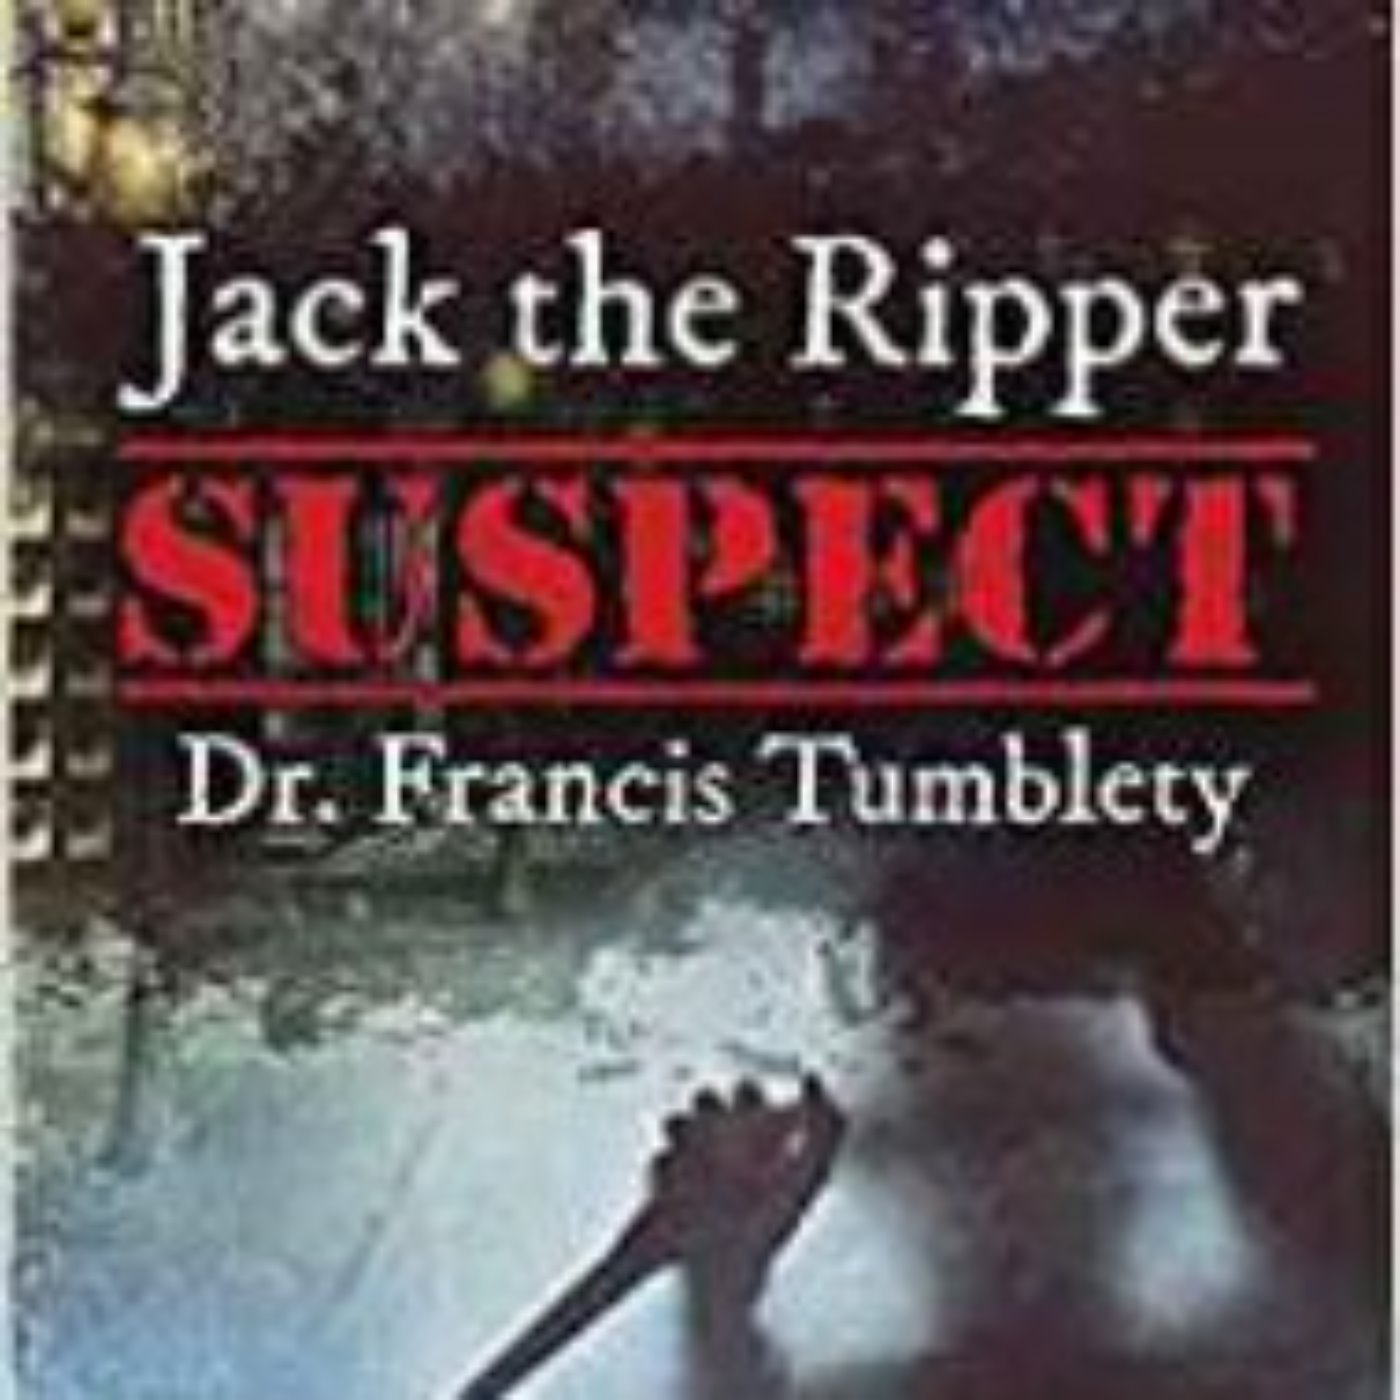 MICHAEL HAWLEY - JACK THE RIPPER SUSPECT DR. FRANCIS TUMBLETY